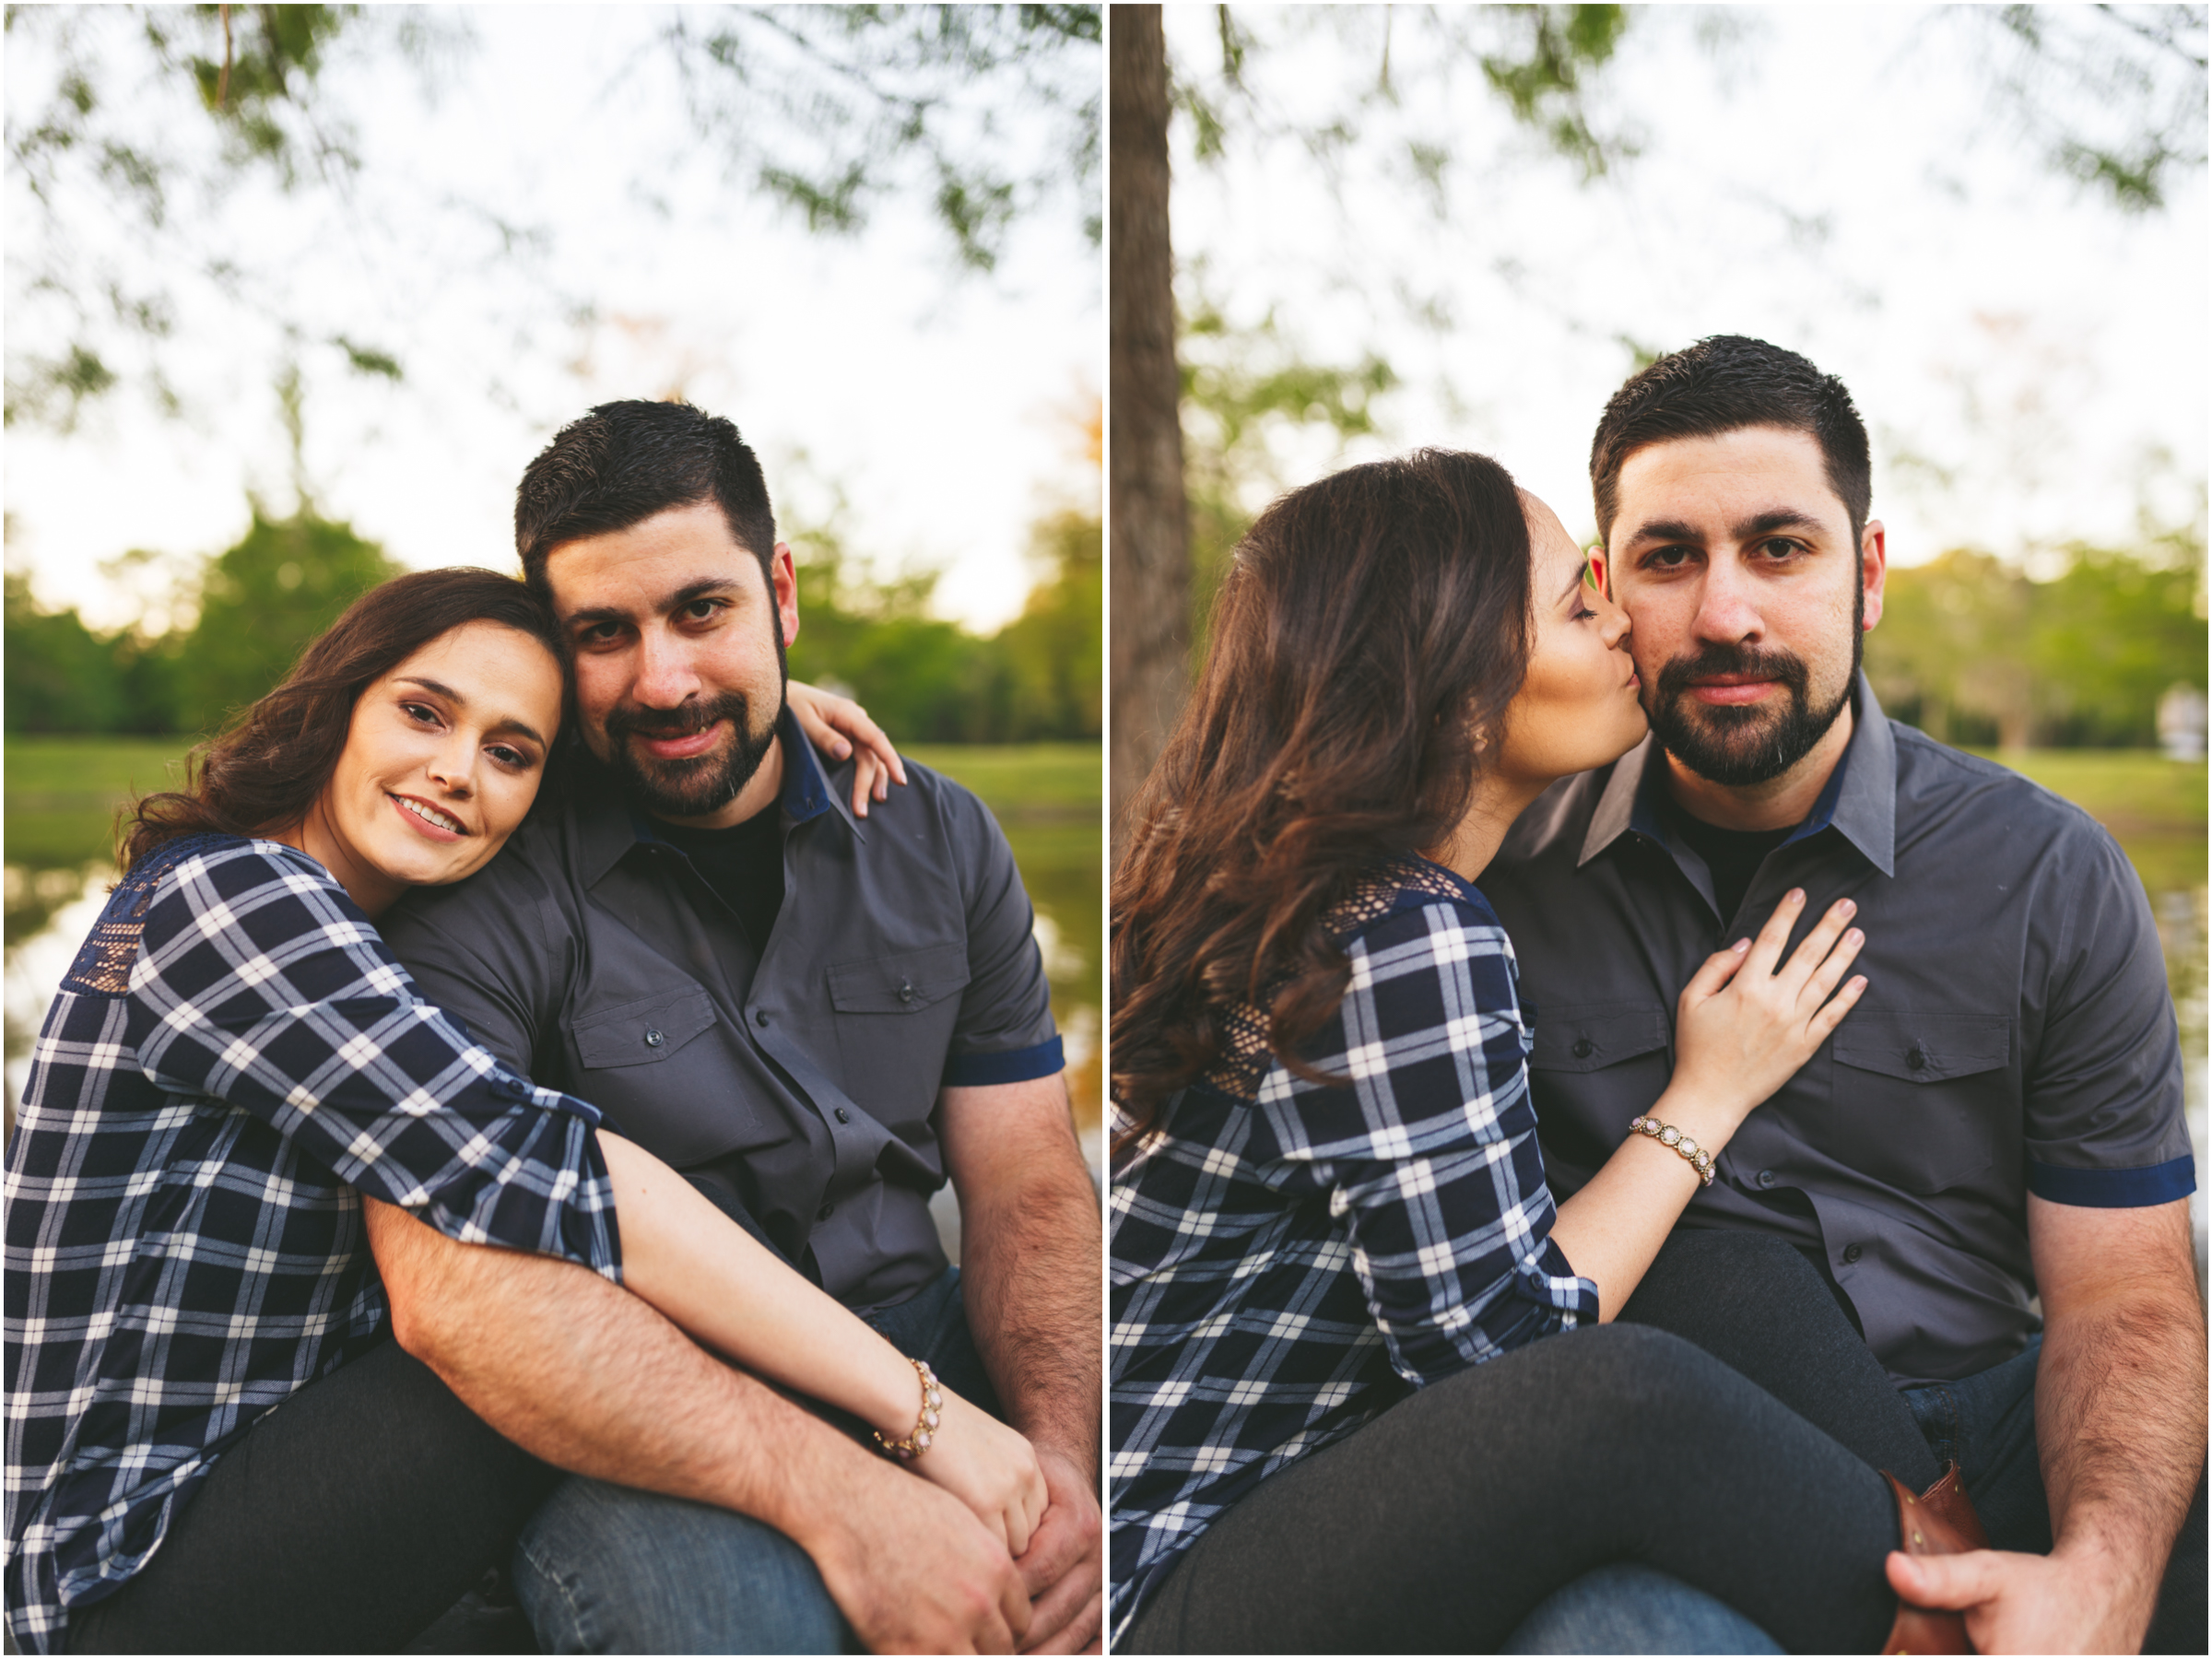 Engagement-portrait-lafayette-broussard-youngsville-photographer-8-diptych2.jpg